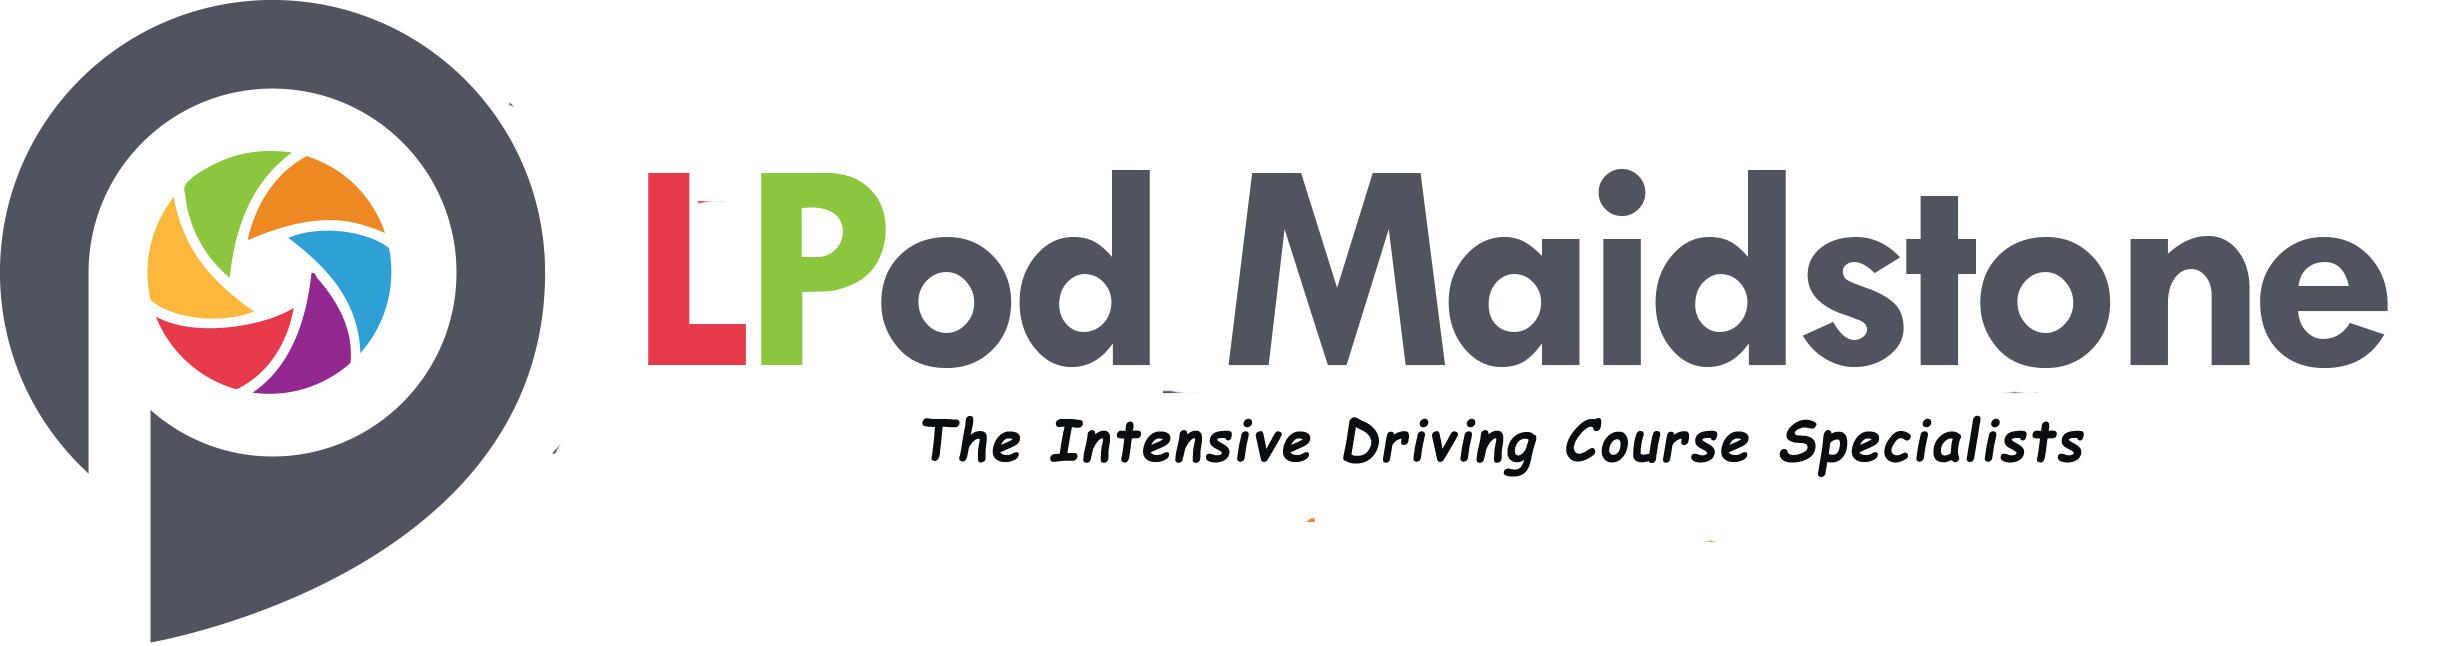 intensive driving courses maidstone